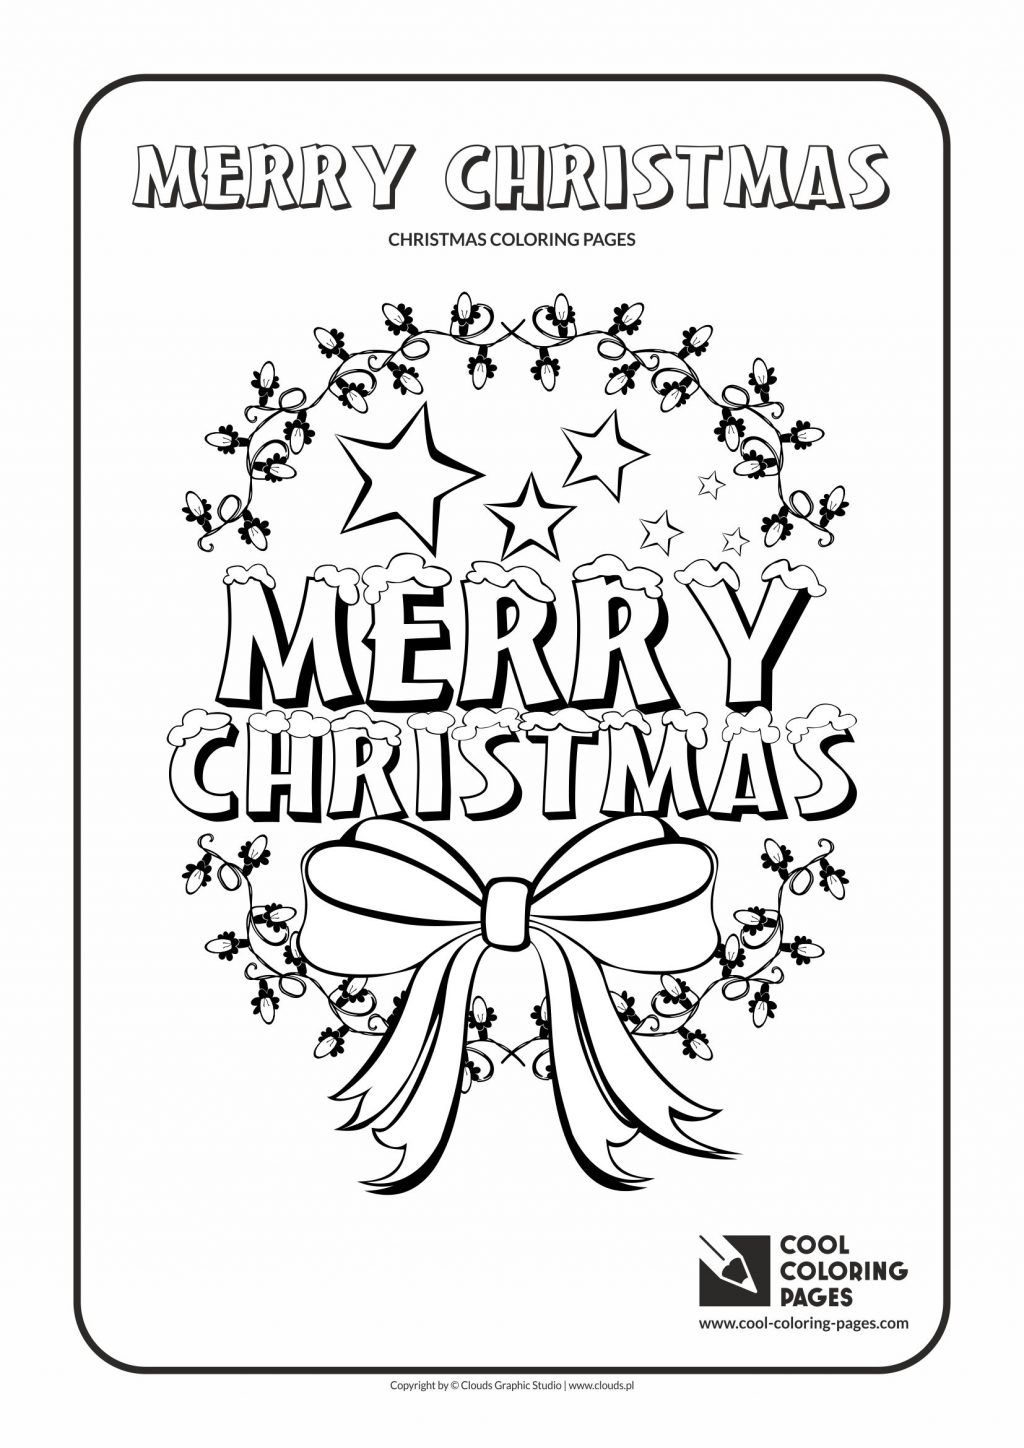 Merry Christmas Coloring Pages Free Printable Merry Christmas Coloring Pages For Kids Adlts Mom Dad Entitlementtrap Com Merry Christmas Coloring Pages Christmas Coloring Pages Christmas Tree Coloring Page